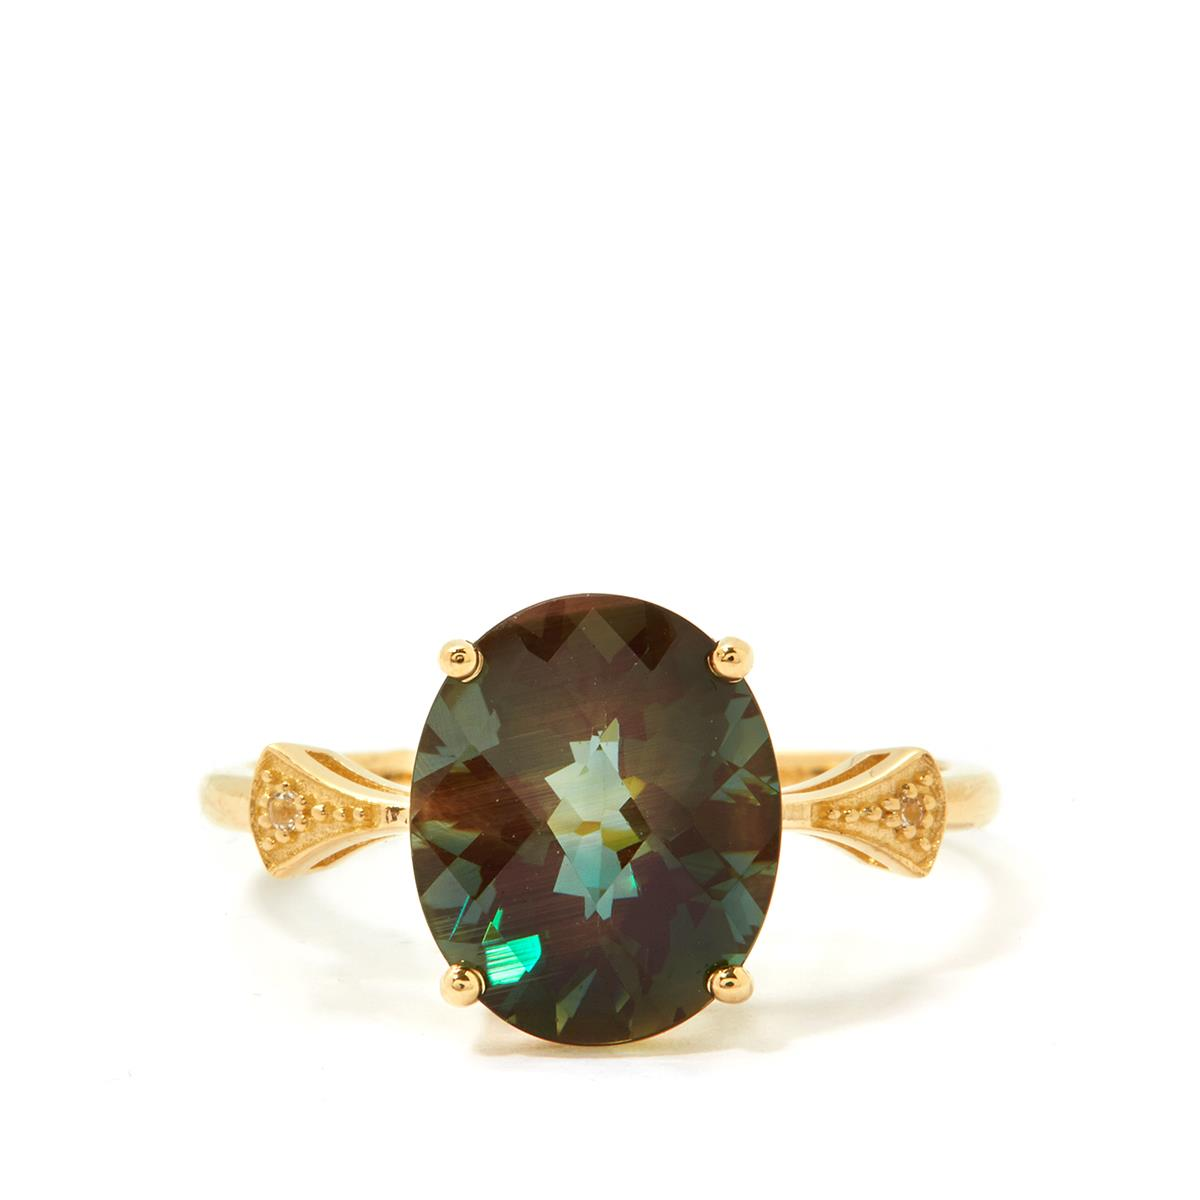 Colour Change Andesine Ring